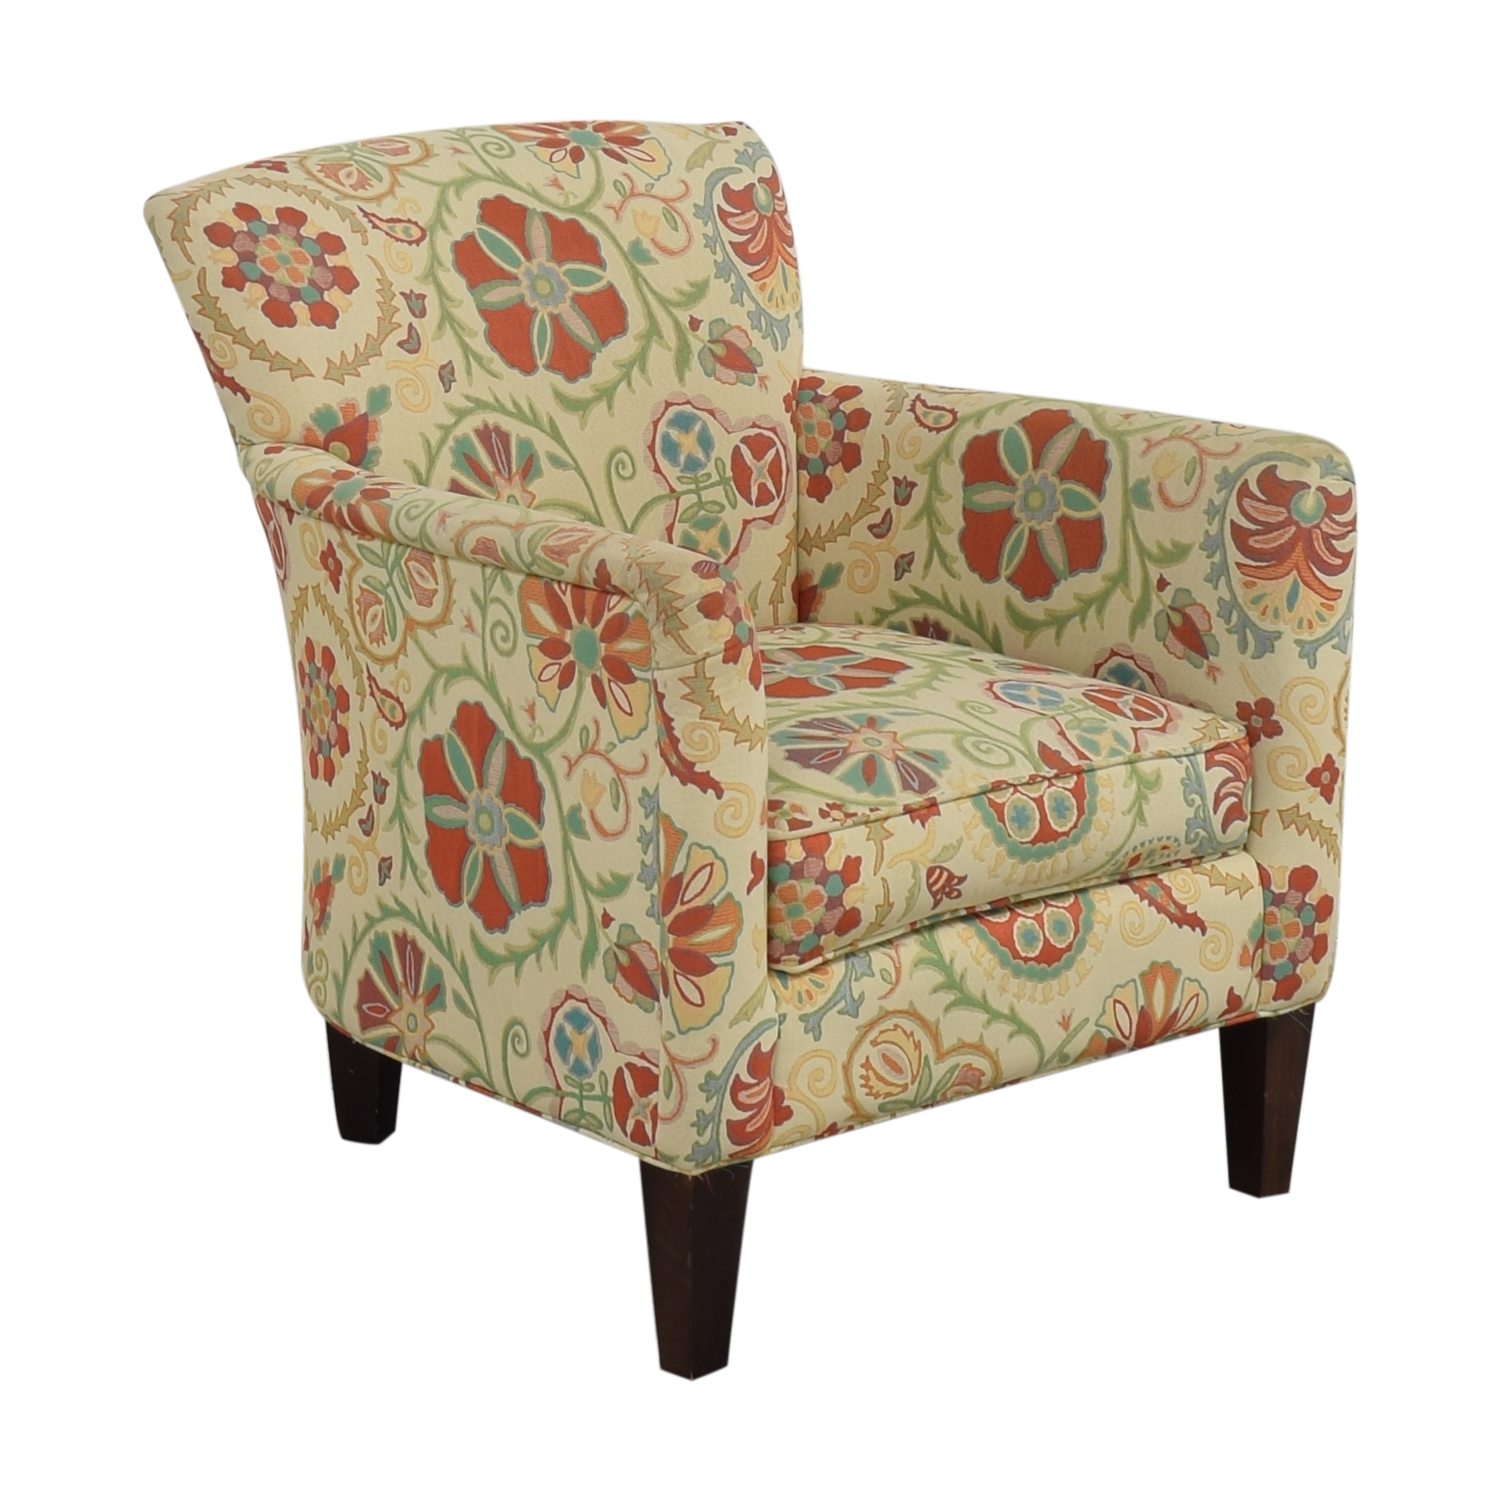 Crate & Barrel Crate & Barrel Upholstered Printed Armchair for sale